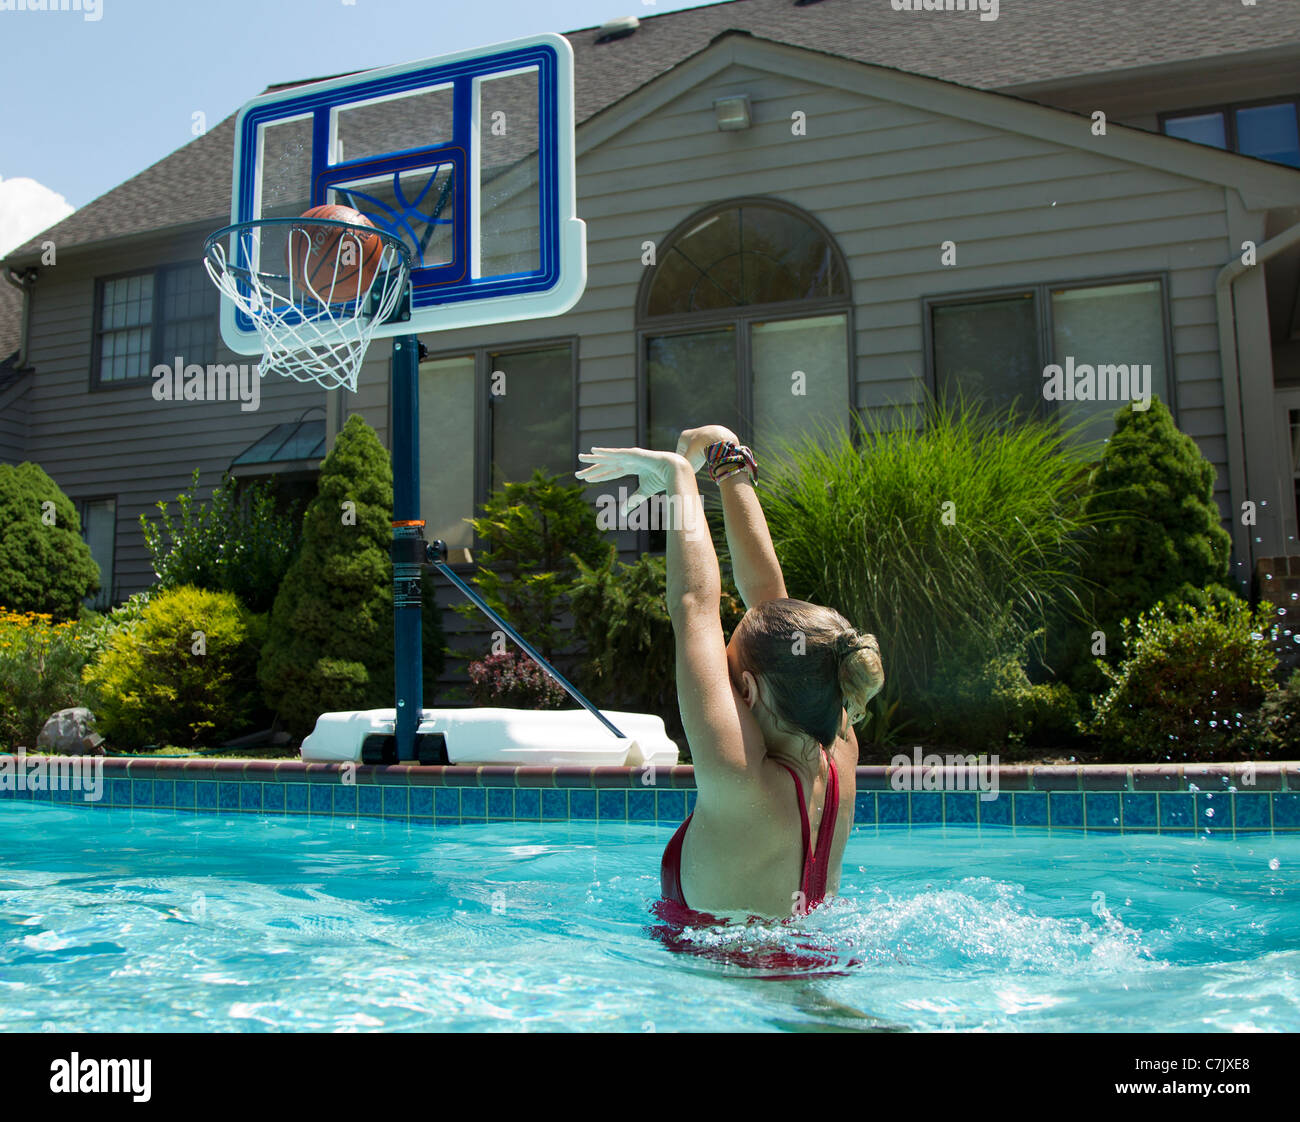 young shooting a basketball in a backyard swimming pool stock